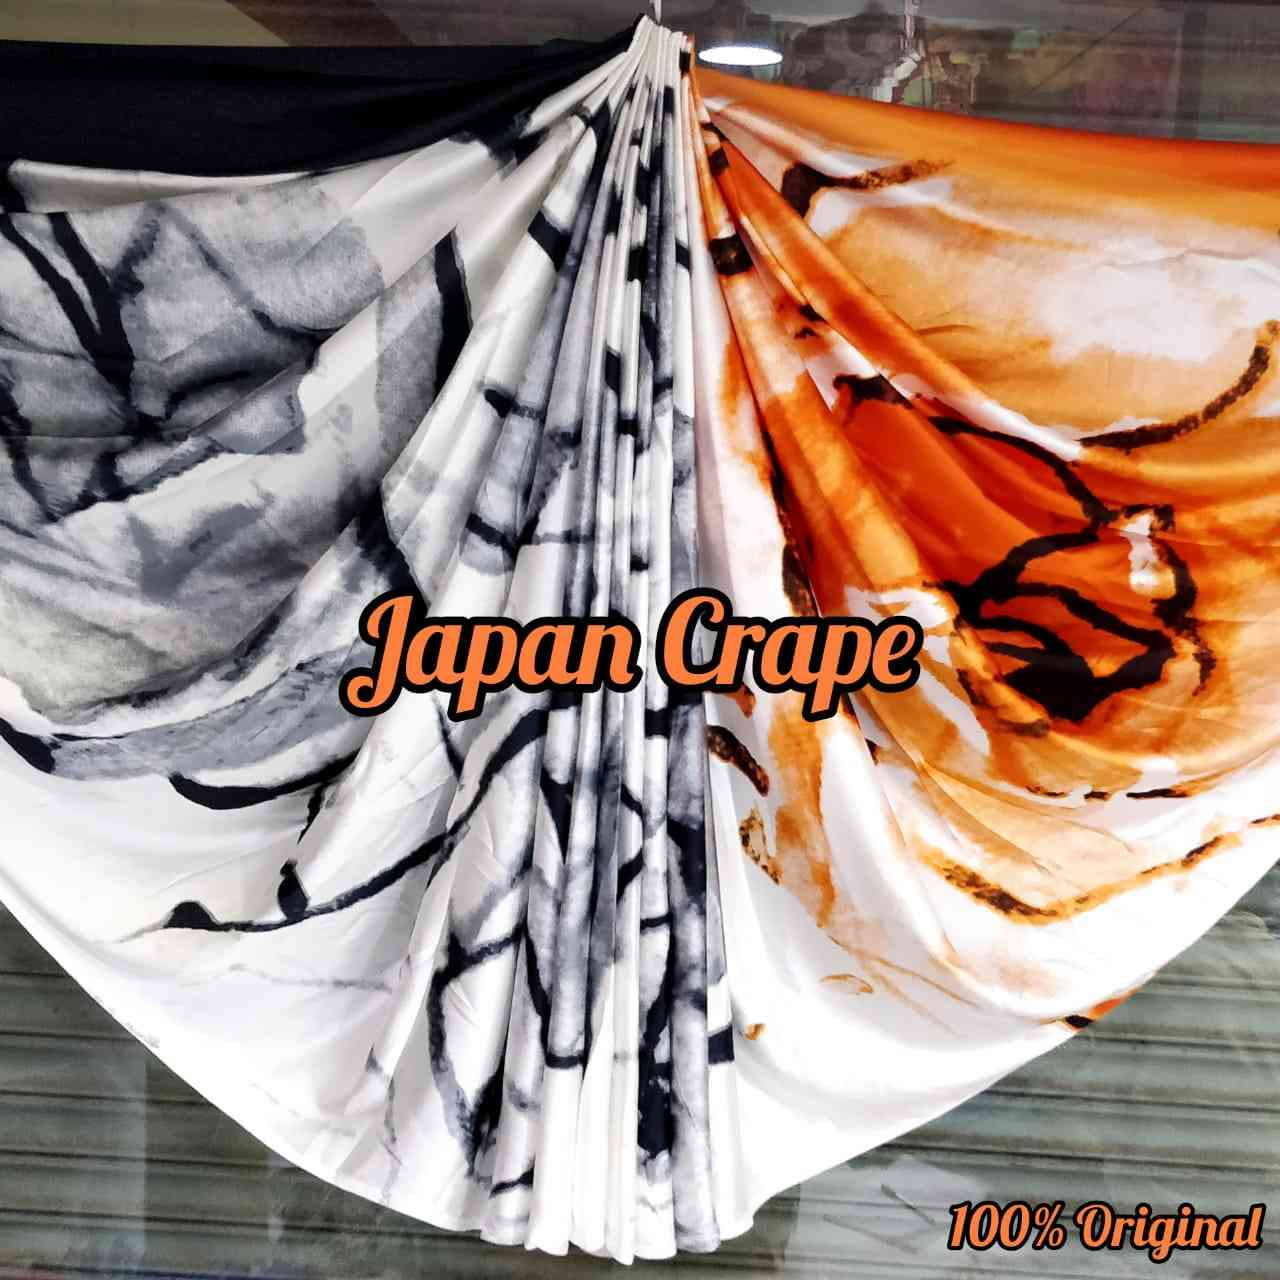 Designer Beige And Orange Japan Crape Saree